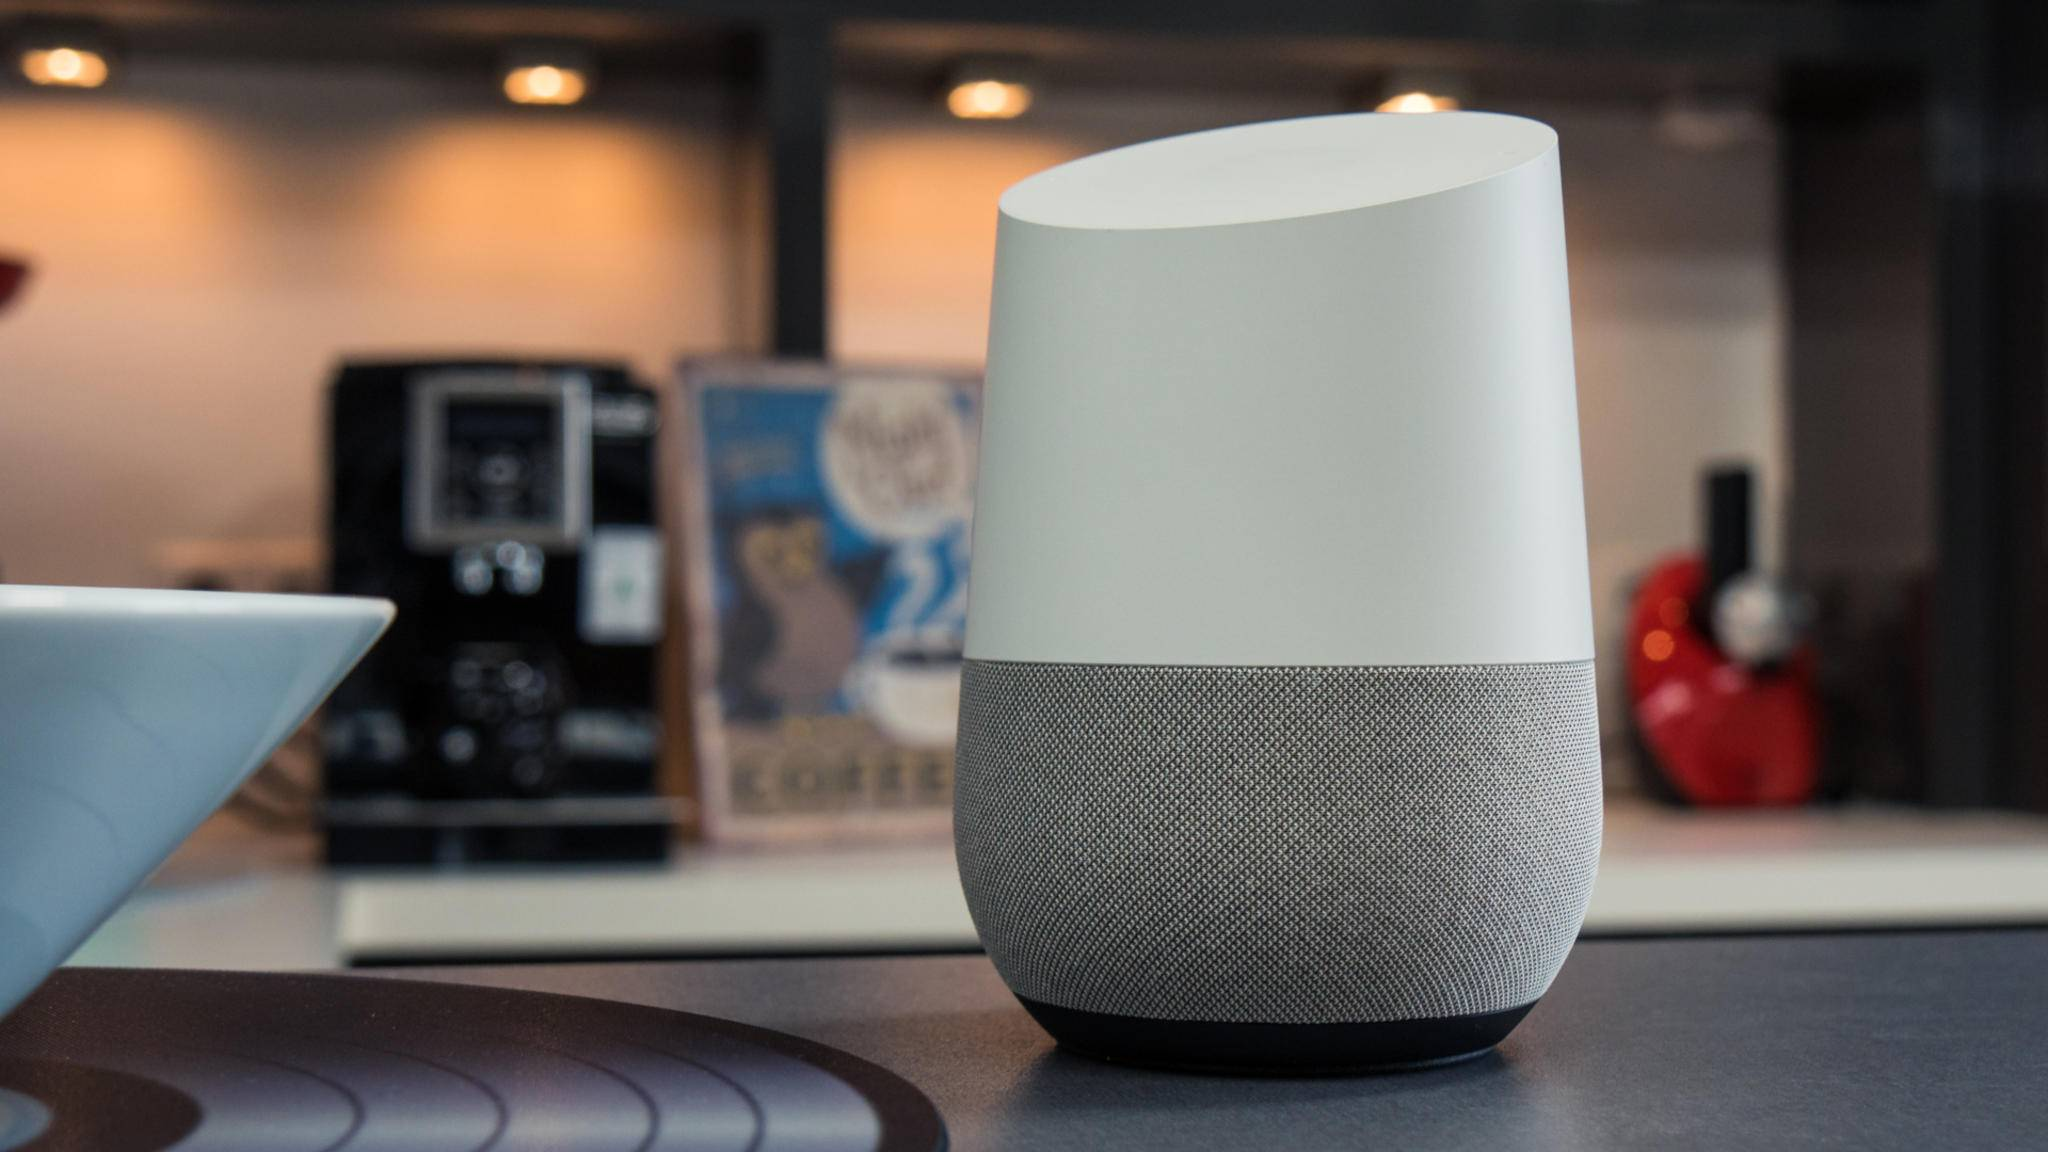 Derzeit wohl die beste Alternative zu Amazon Echo: der Google Home.